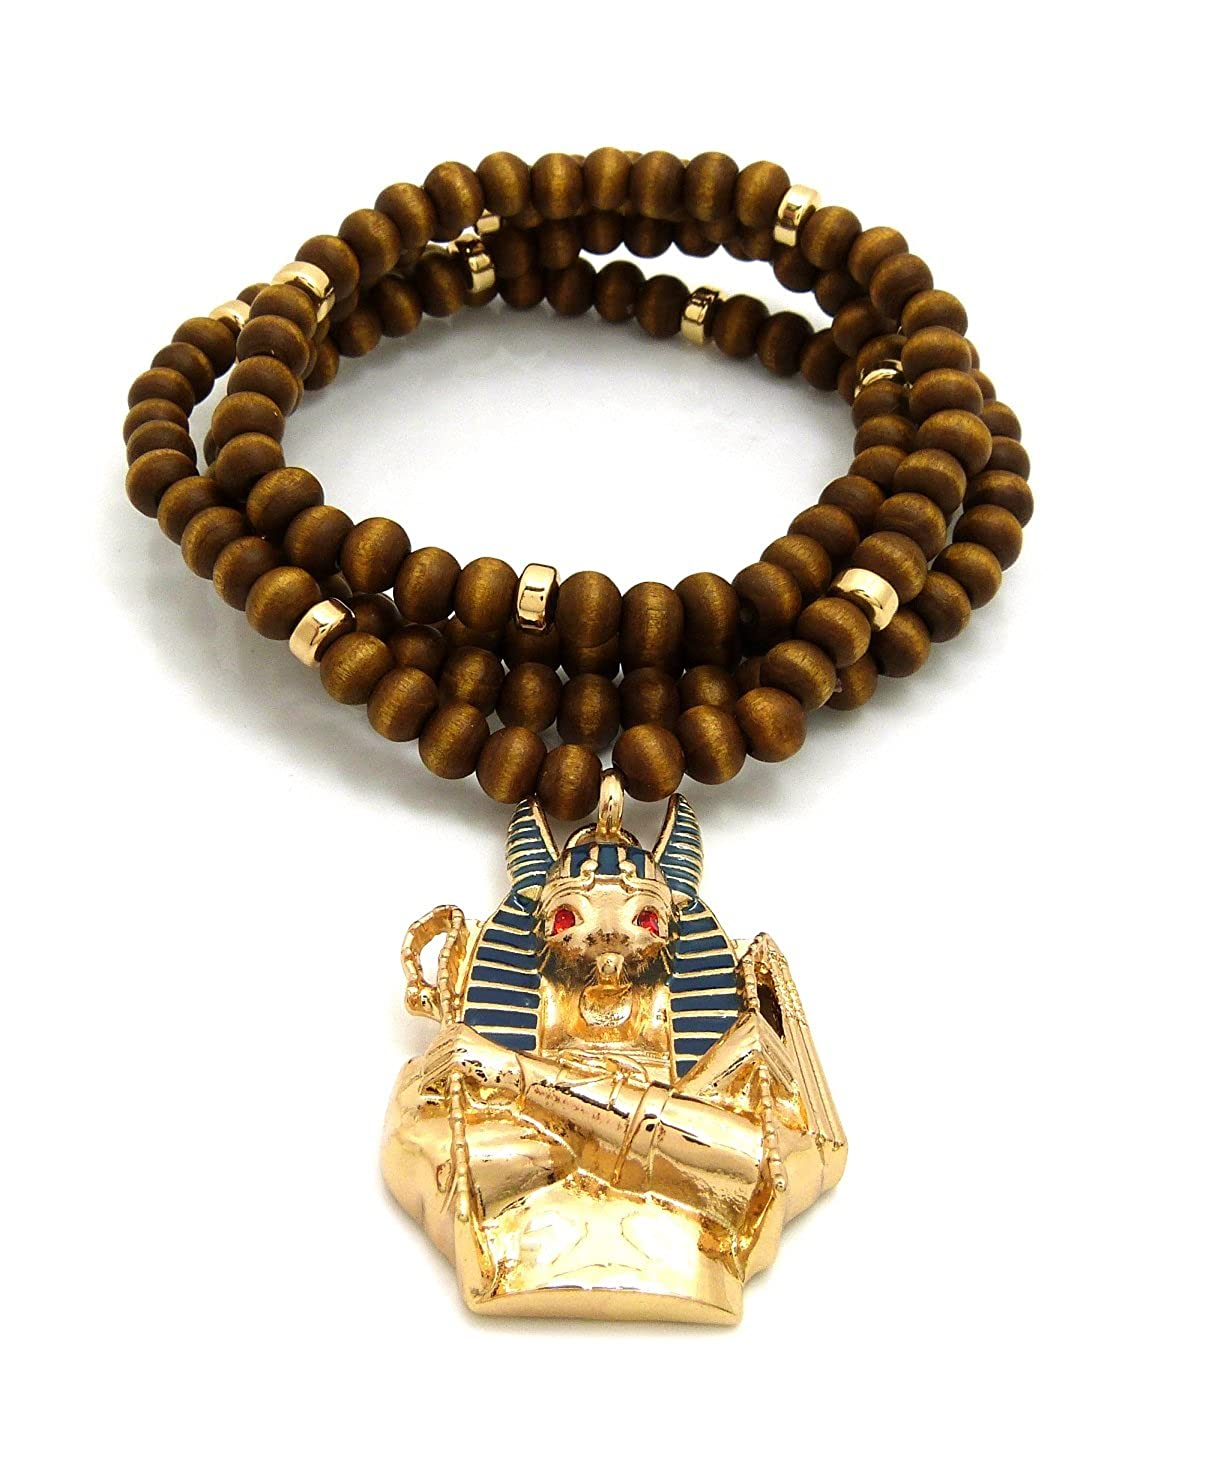 Egypt God Anubis Head Pendant 6mm 30 Wooden Bead Necklace in Gold Tone